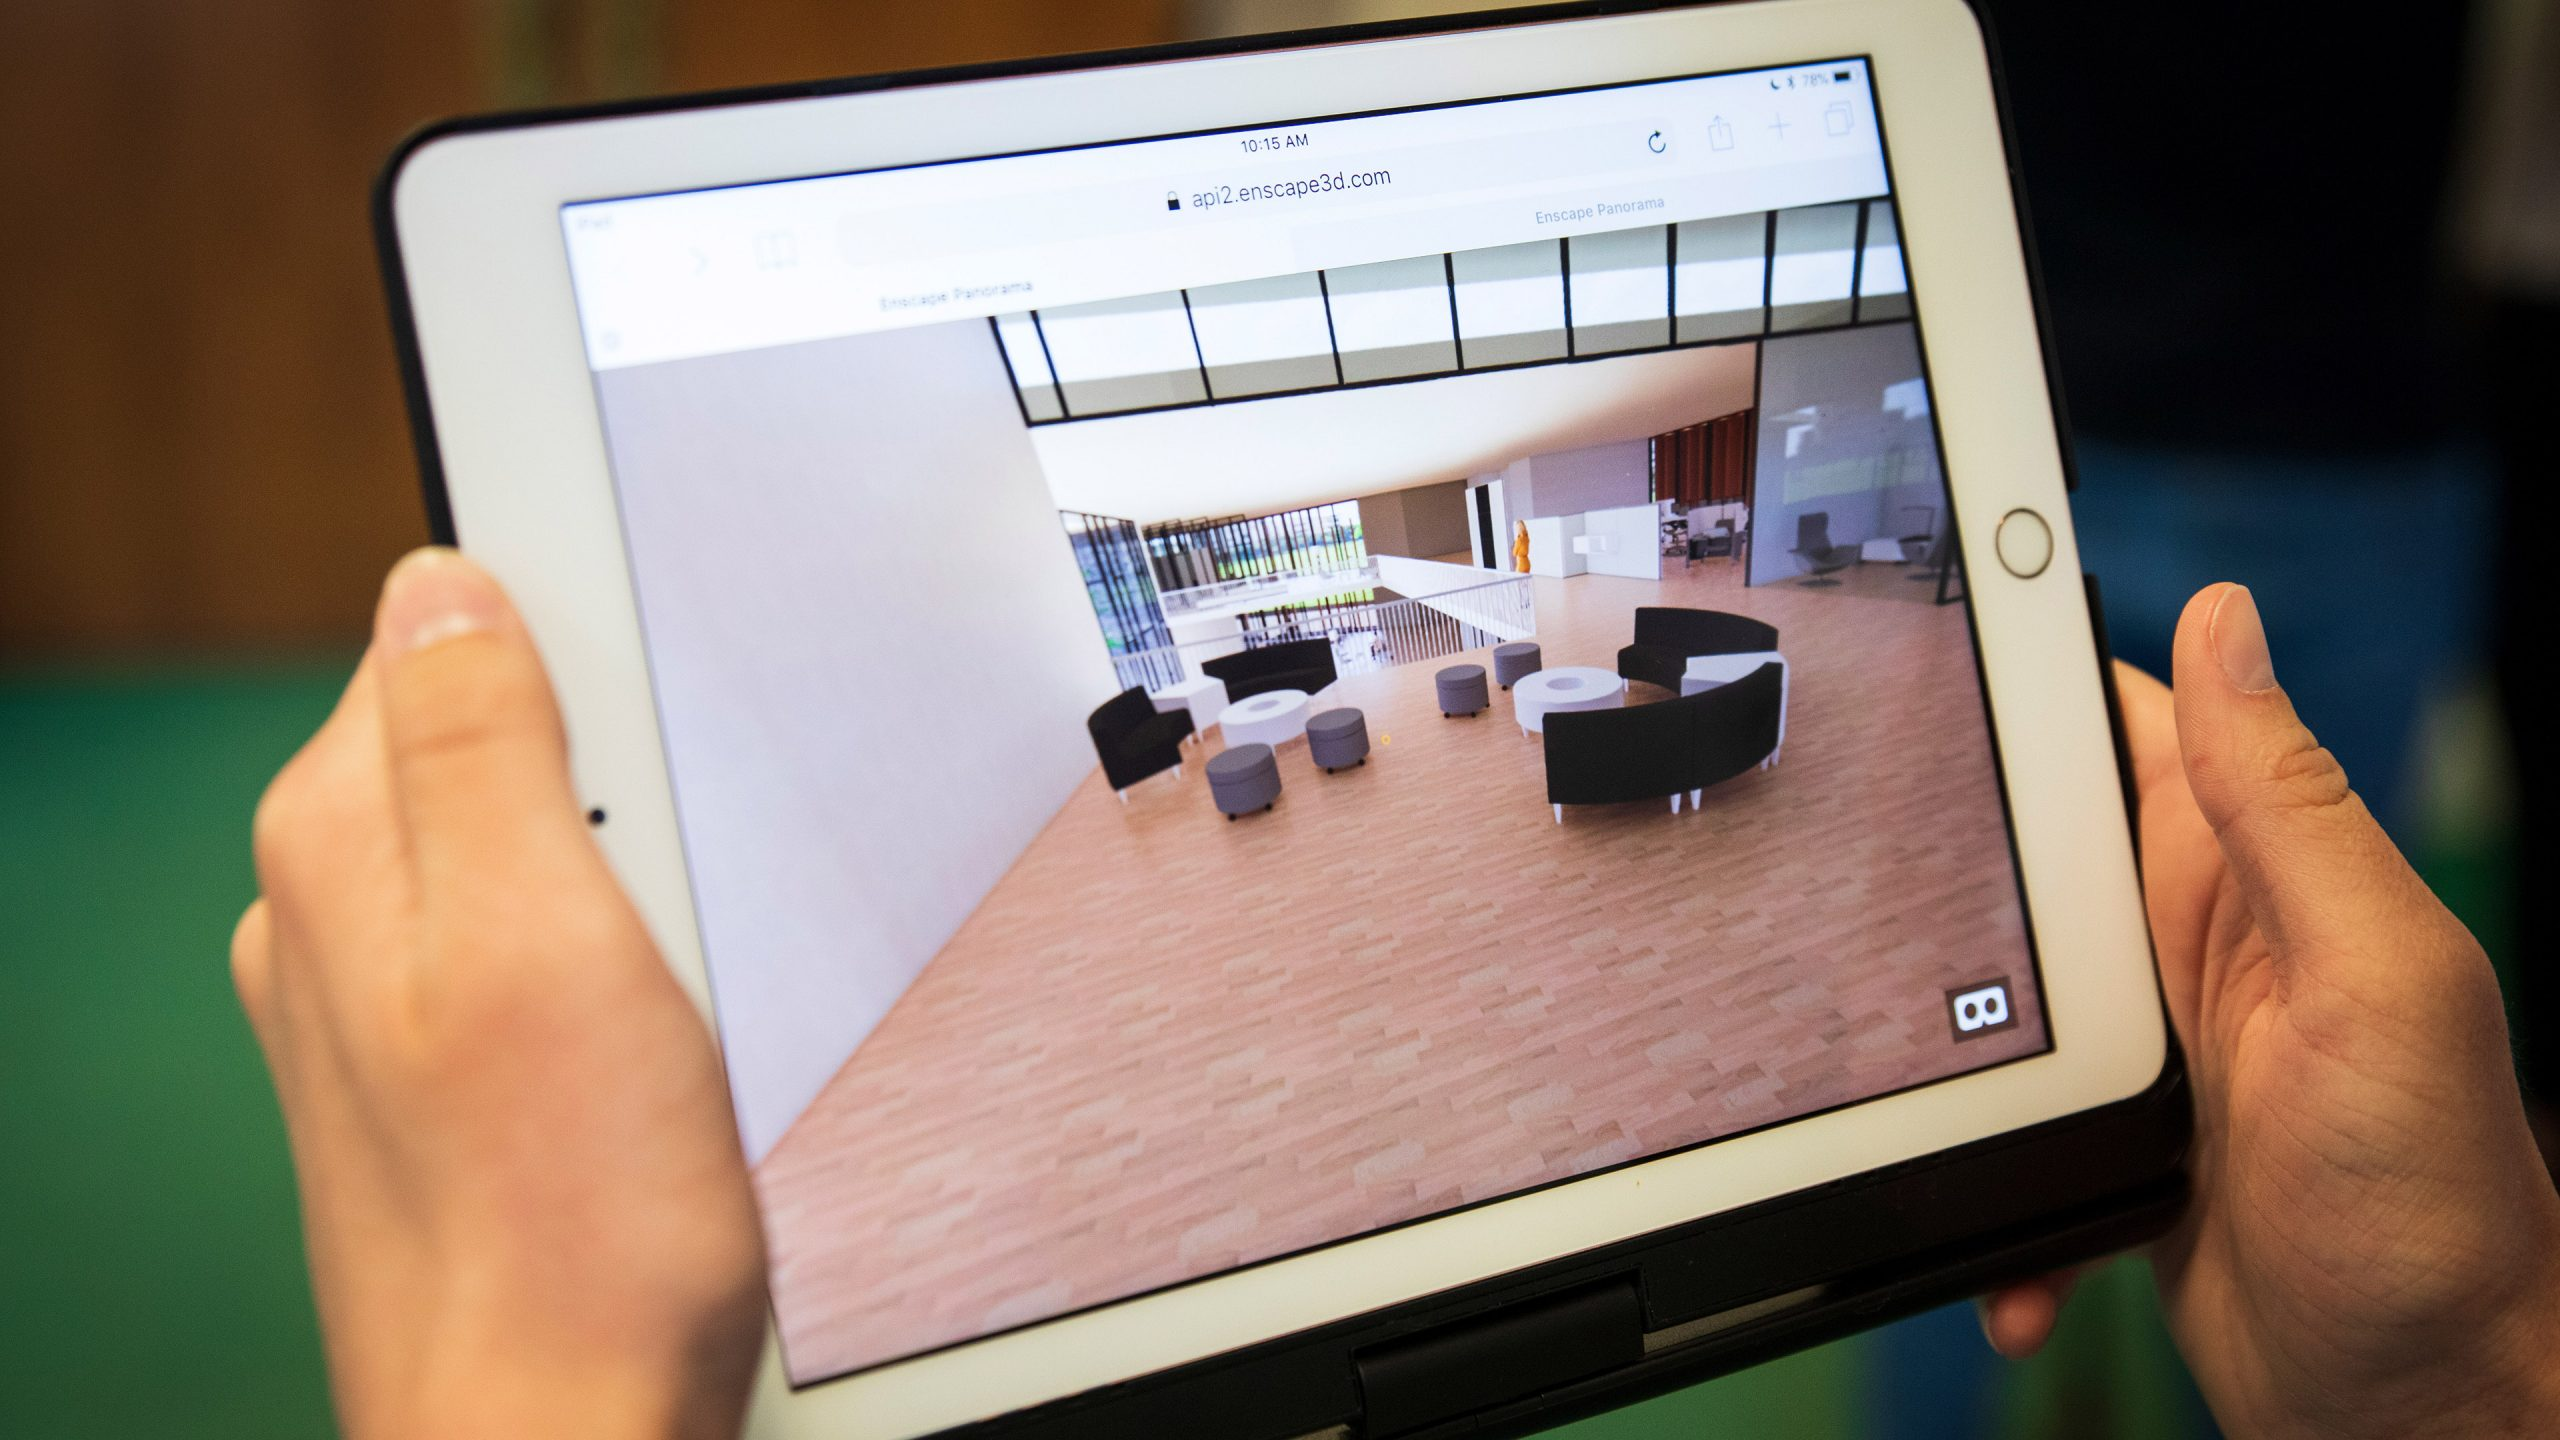 Hands holding a tablet displaying a student's virtual rendering of a building designed for Paradise, CA. Photo by Joe Johnston.